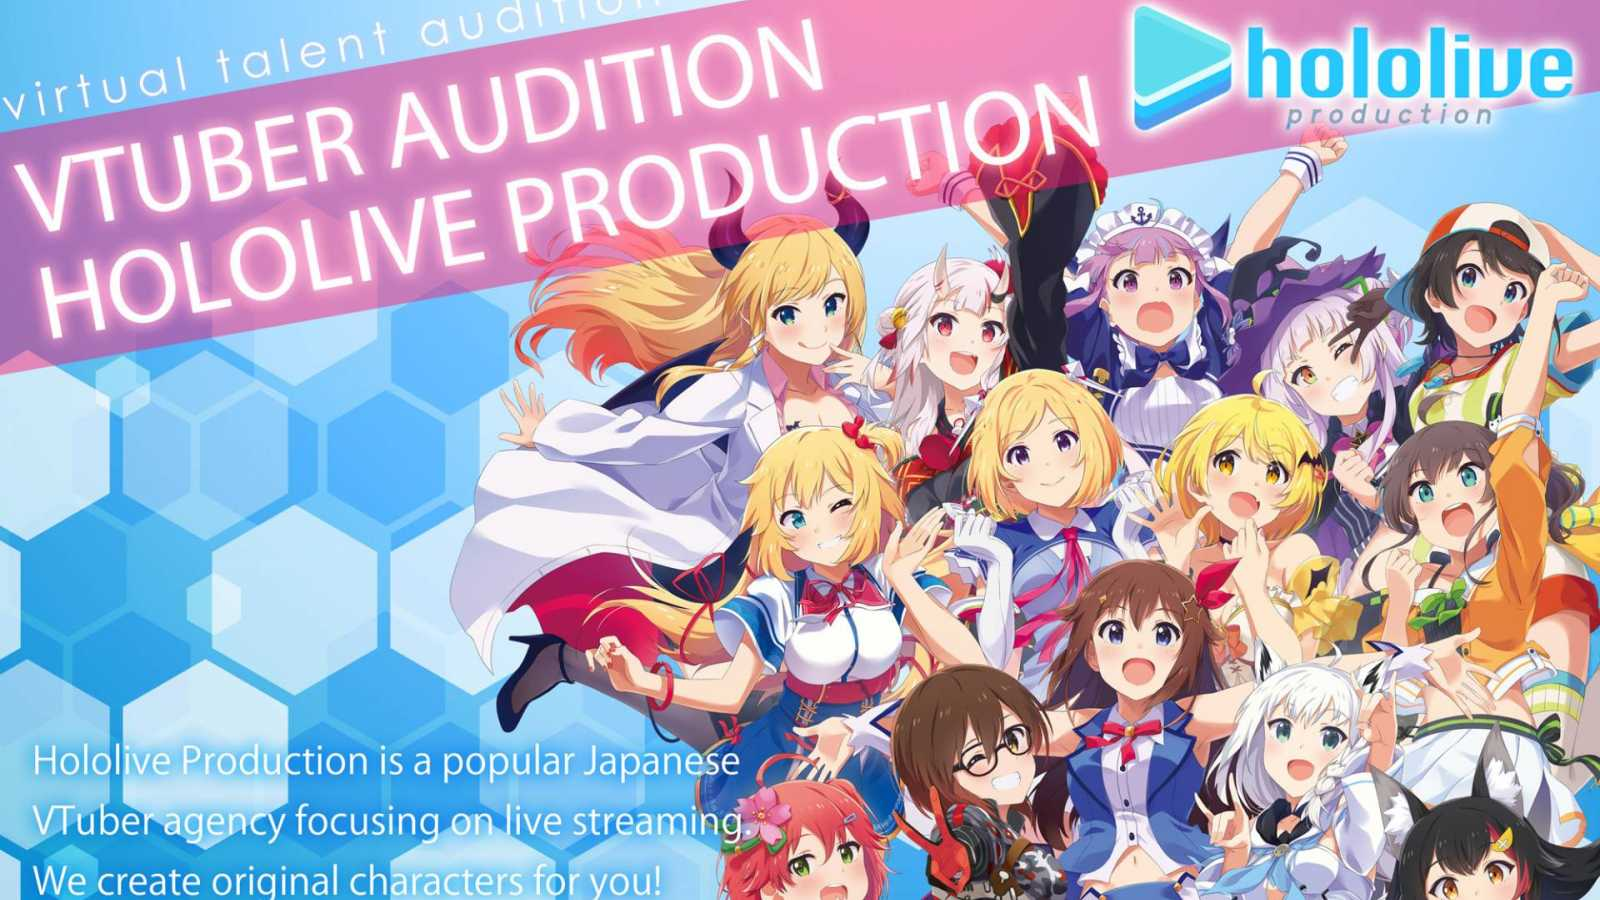 Hololive Production Begins Auditioning VTubers from English-Speaking Countries © Hololive Production. All rights reserved.